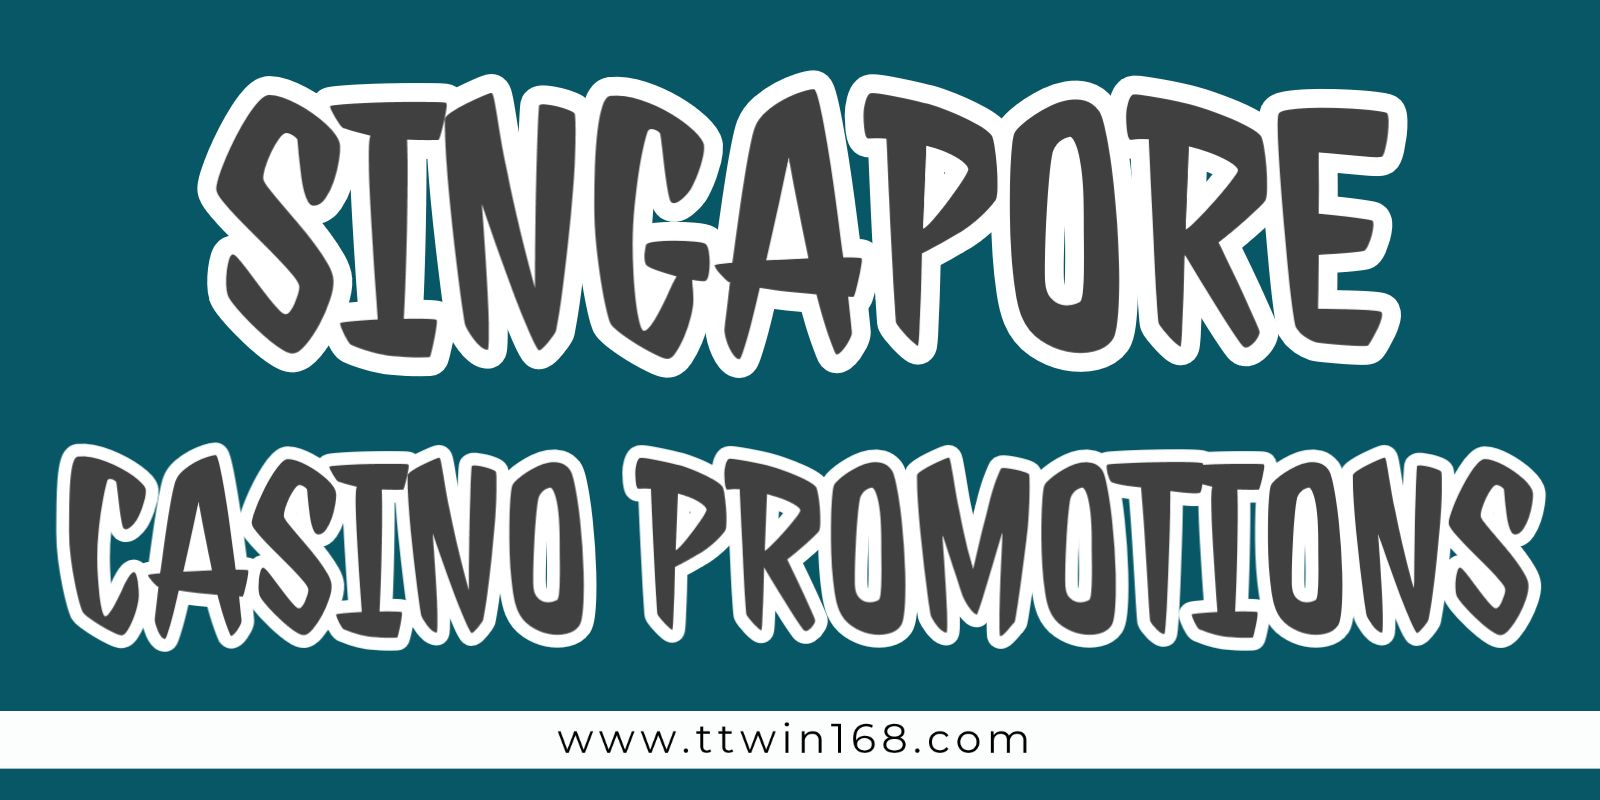 Singapore Casino Promotions in 2020 Casino promotion